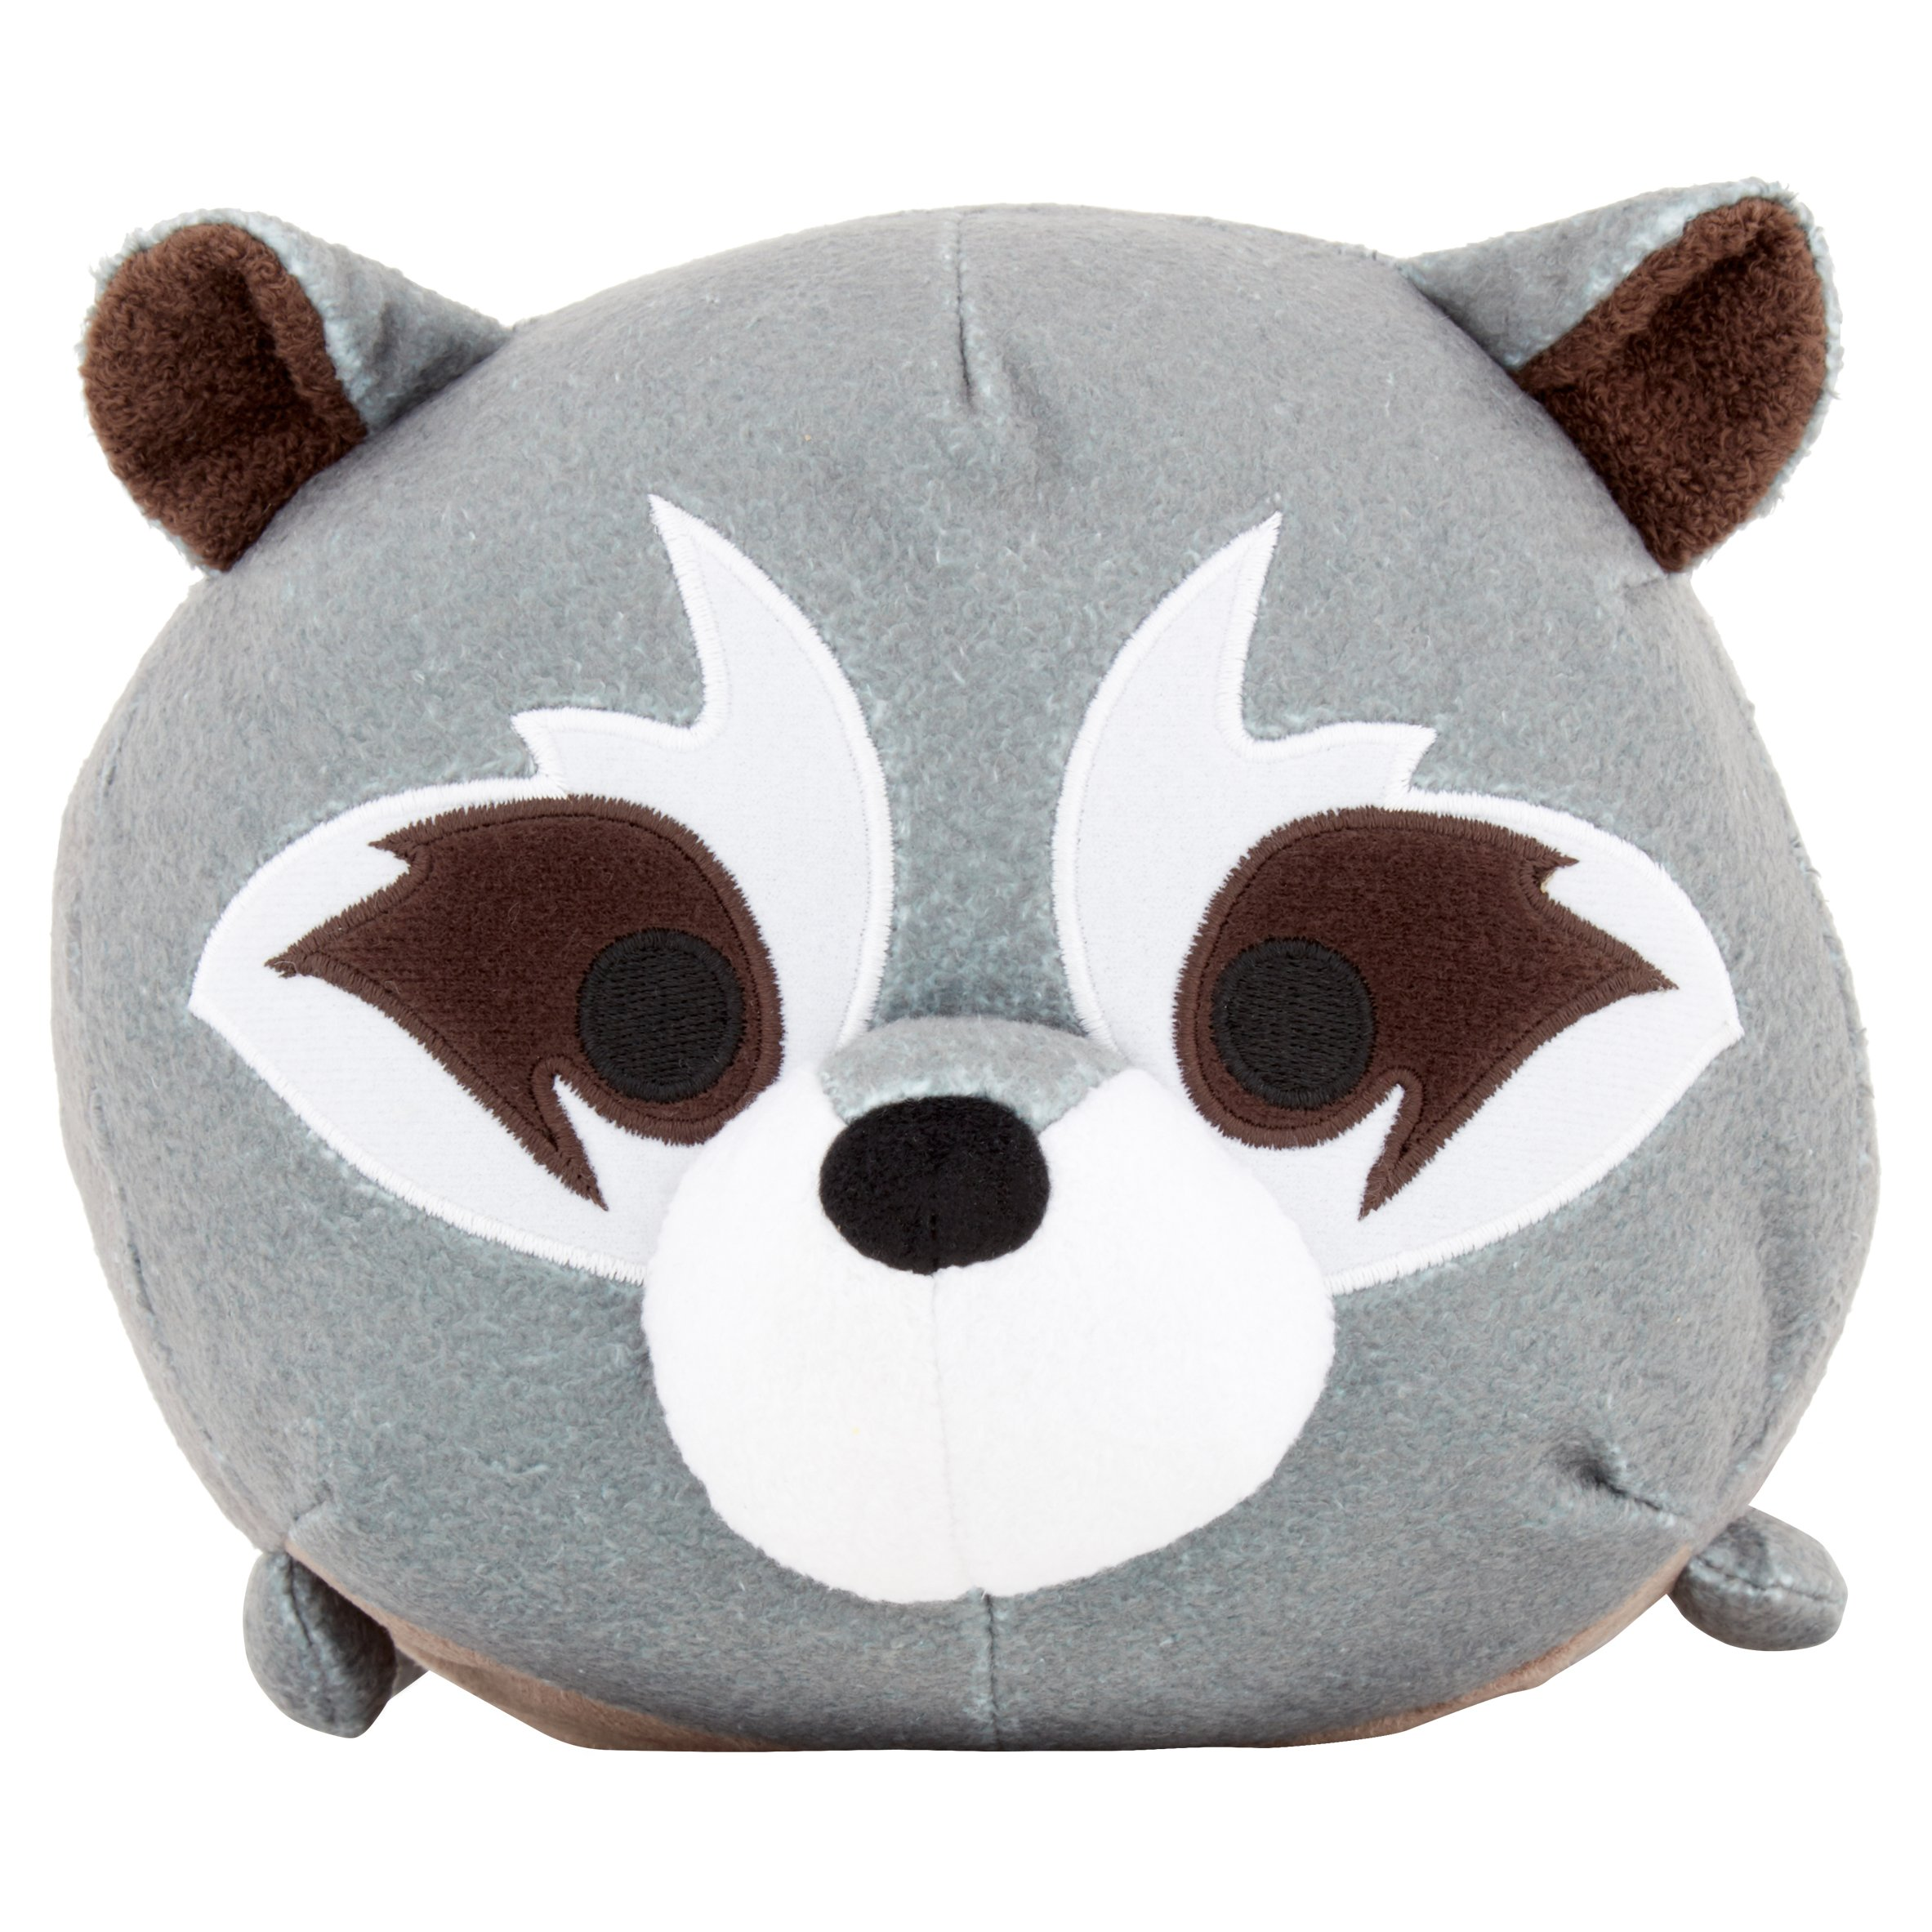 "Disney Tsum Tsum Guardians of the Galaxy Rocket the Racooon 12"" Plush"